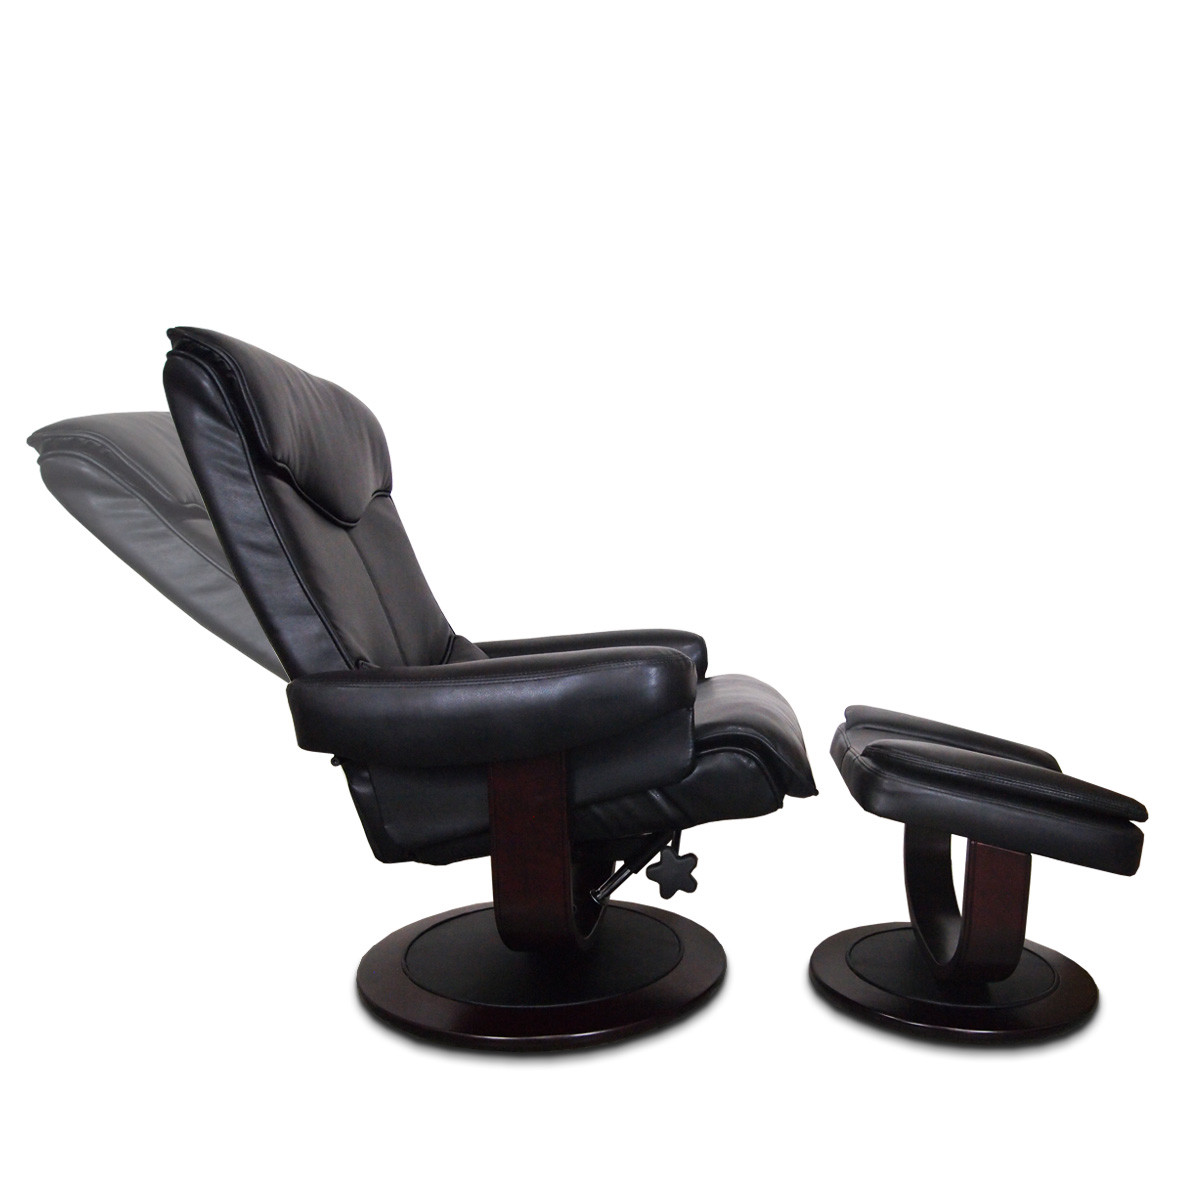 Image of: Good Reclining Office Chair With Footrest